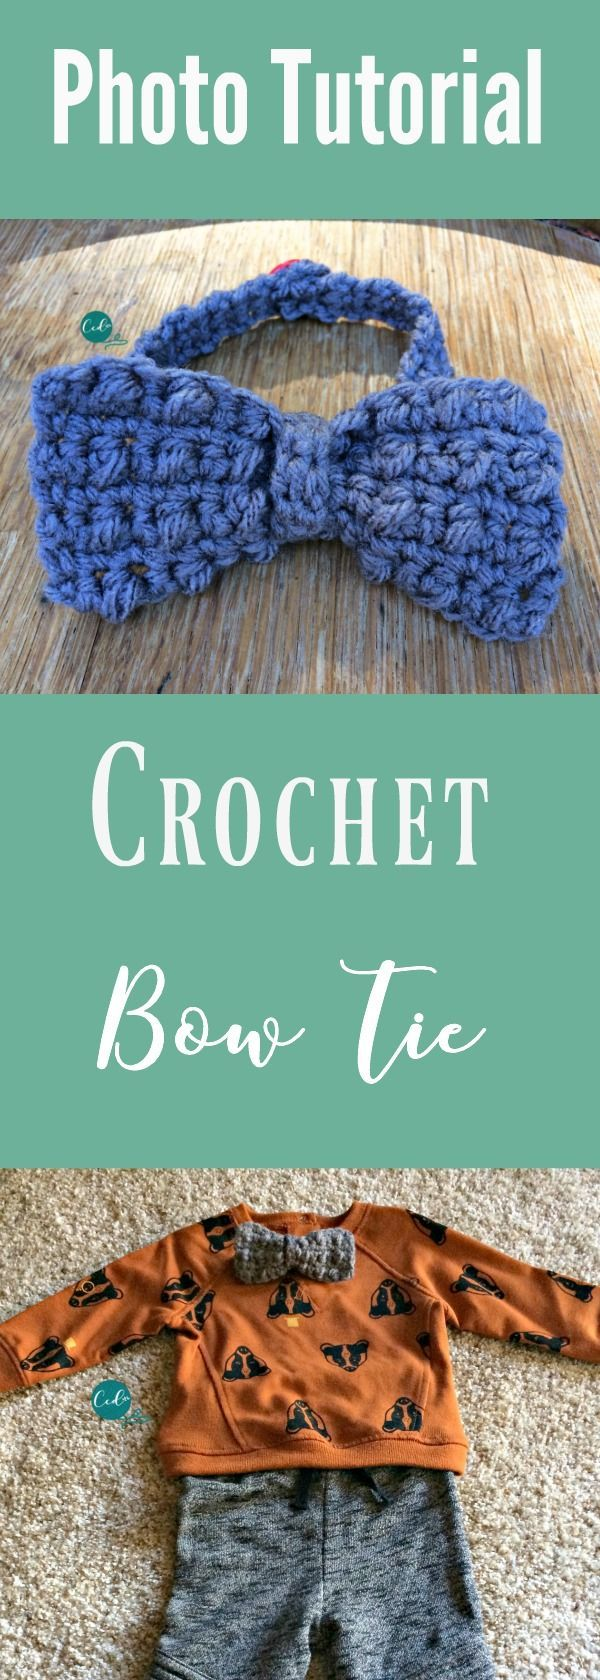 Crochet bow tie free pattern and tutorial | two bowtie sizes | holiday bowtie crochet pattern | free bow tie pattern crochet | bow tie tutorial | baby bow tie | crochet bow | mini puff stitch crochet | mini bean stitch crochet